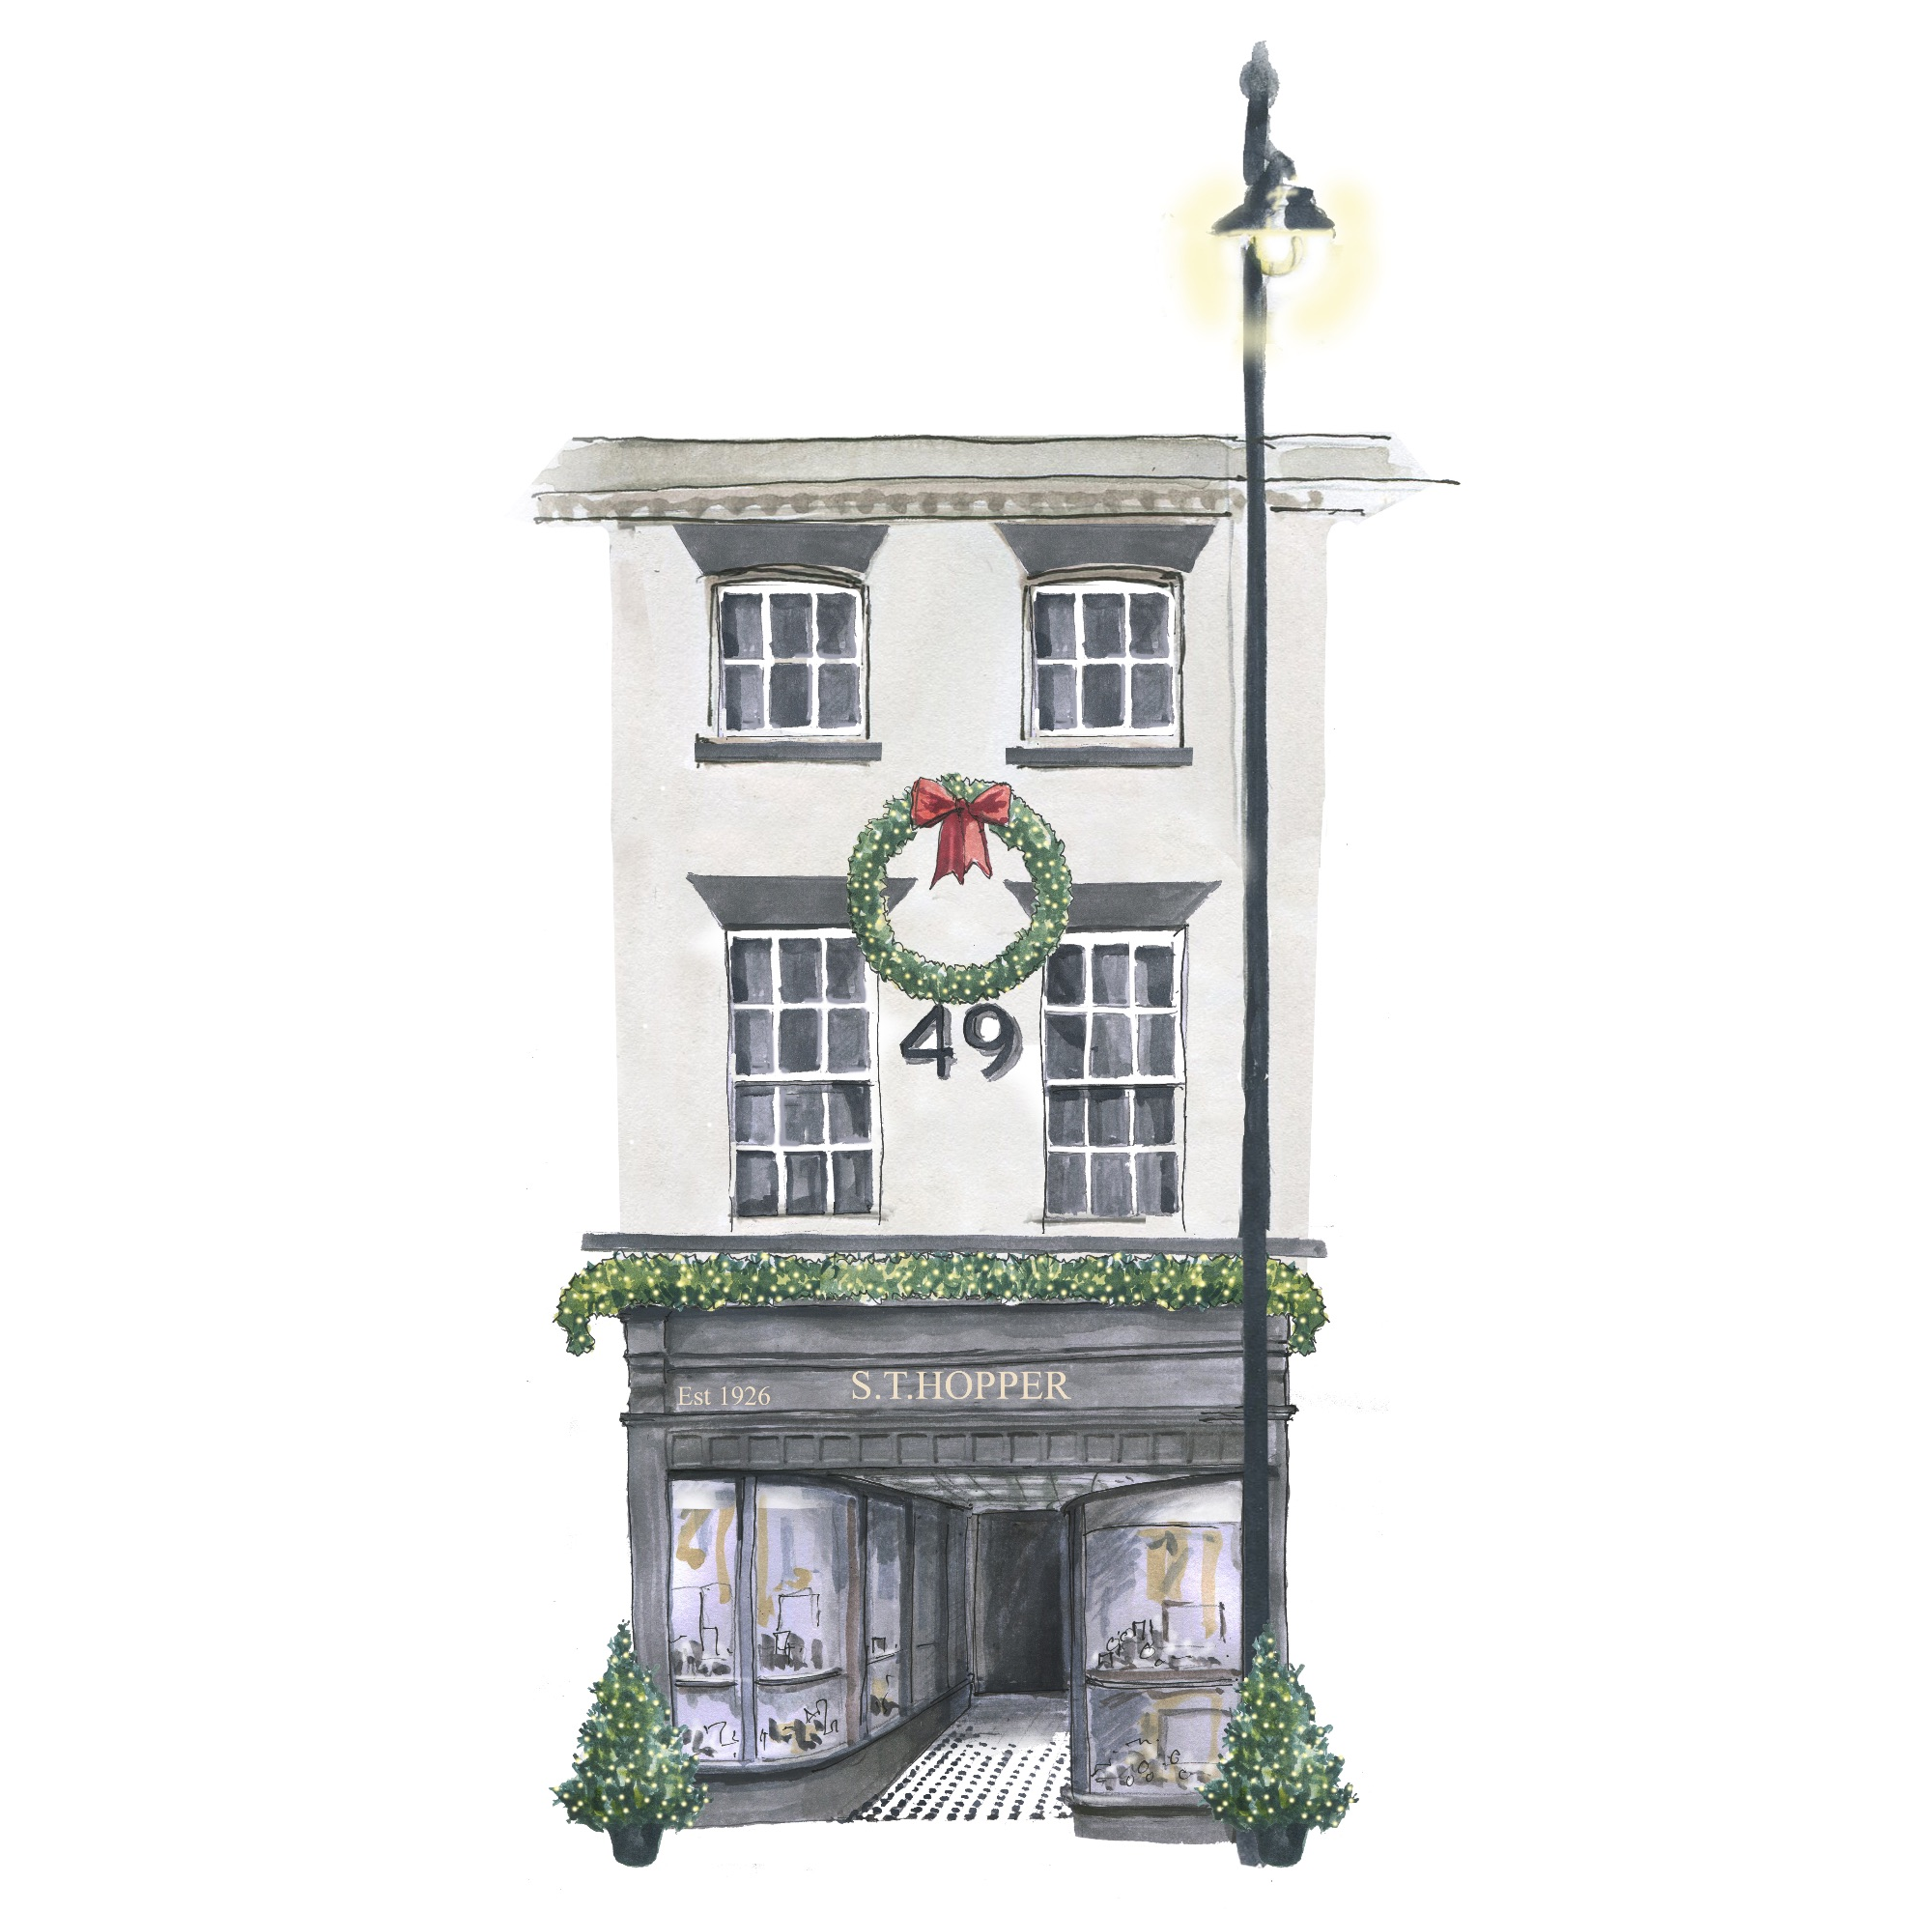 New shop front 2 christmas.jpg